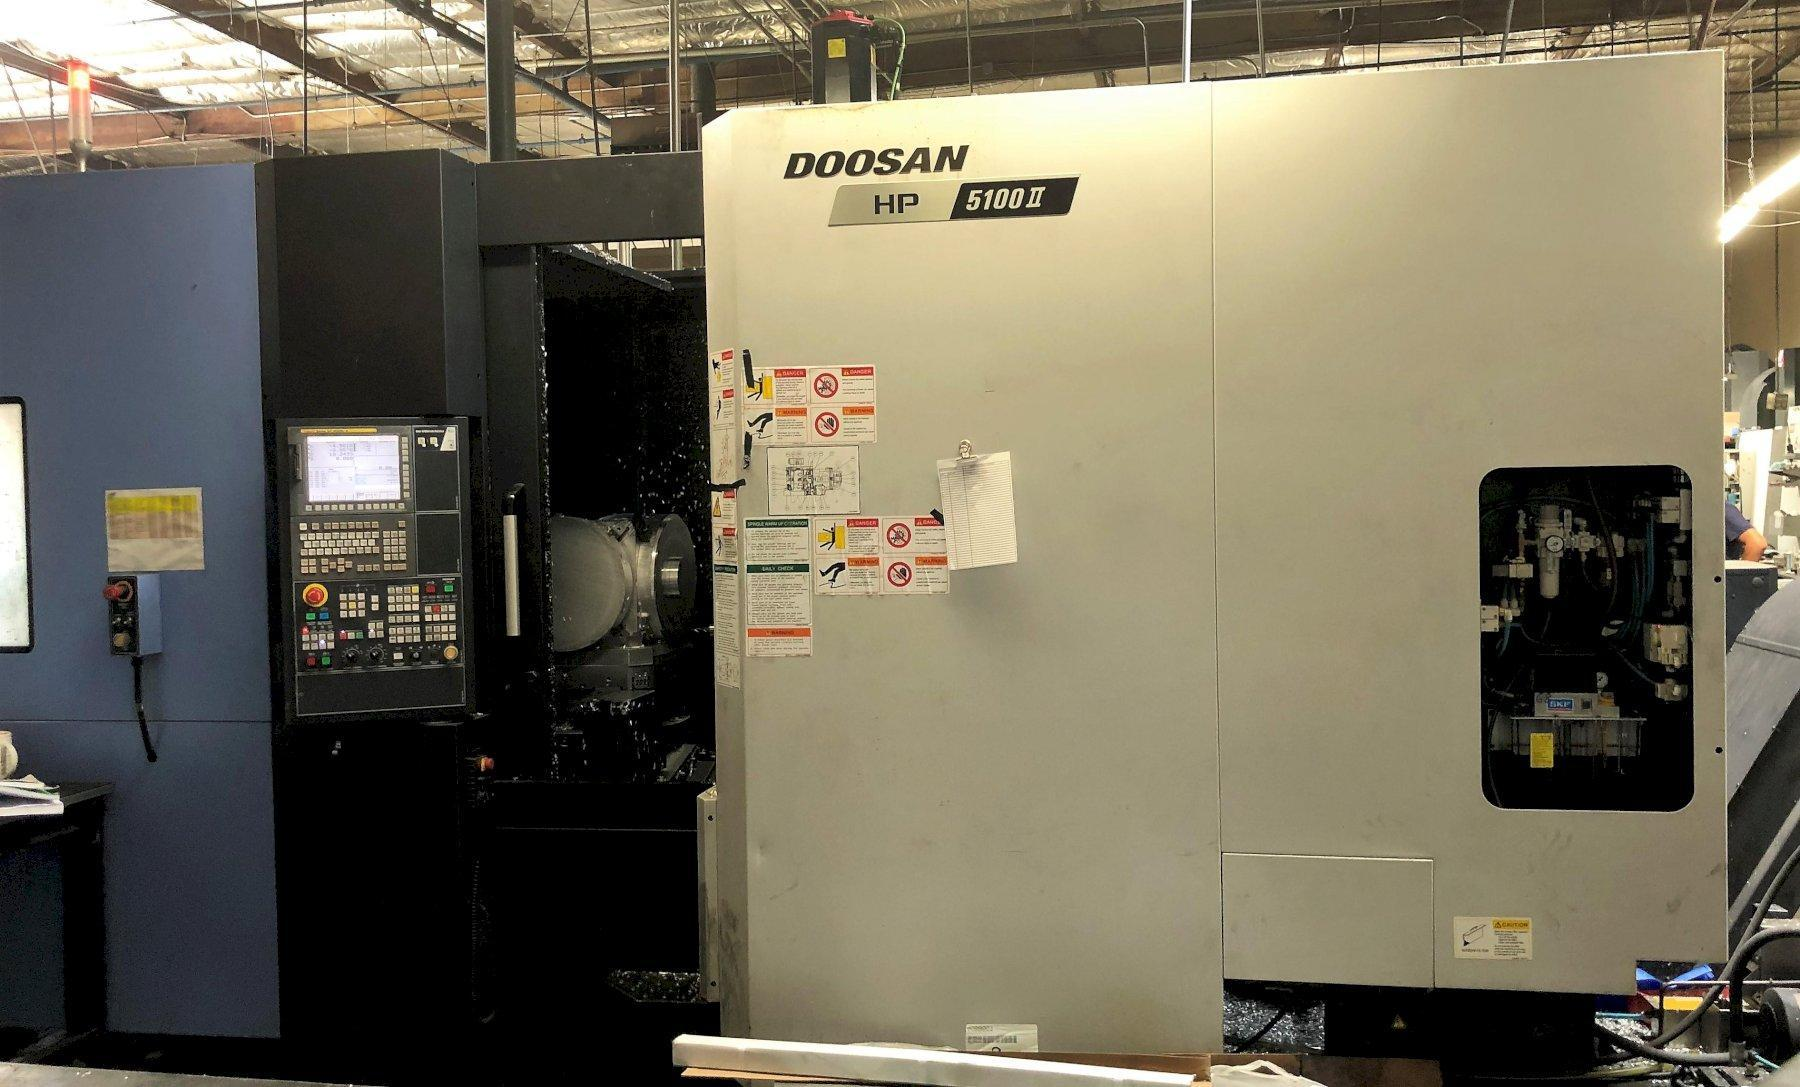 Doosan HP-5100II HMC 2015 with 10 Pallet Linear Pallet System,  Fanuc 31iB CNC Control, Full B-Axis, CT40, 14k RPM Spindle, 262 Position Magazine Tool Changer, Through Spindle Coolant, Rear Chip Conveyor.